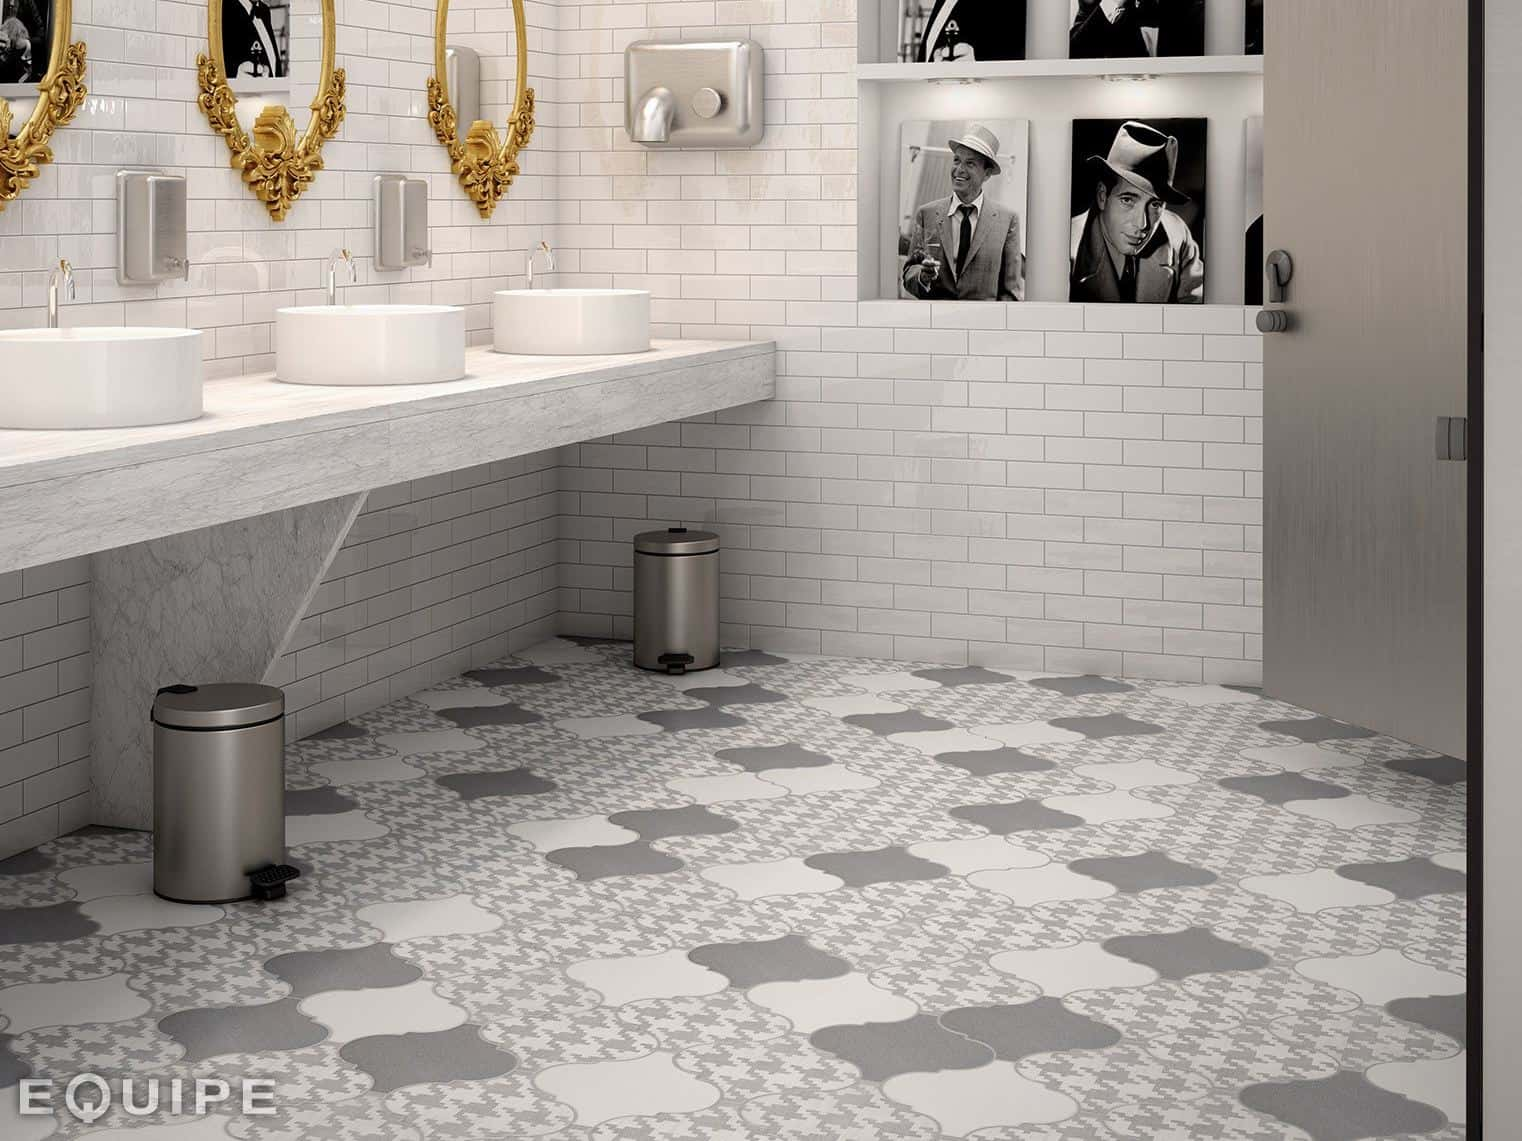 21 arabesque tile ideas for floor wall and backsplash Images of bathroom tile floors